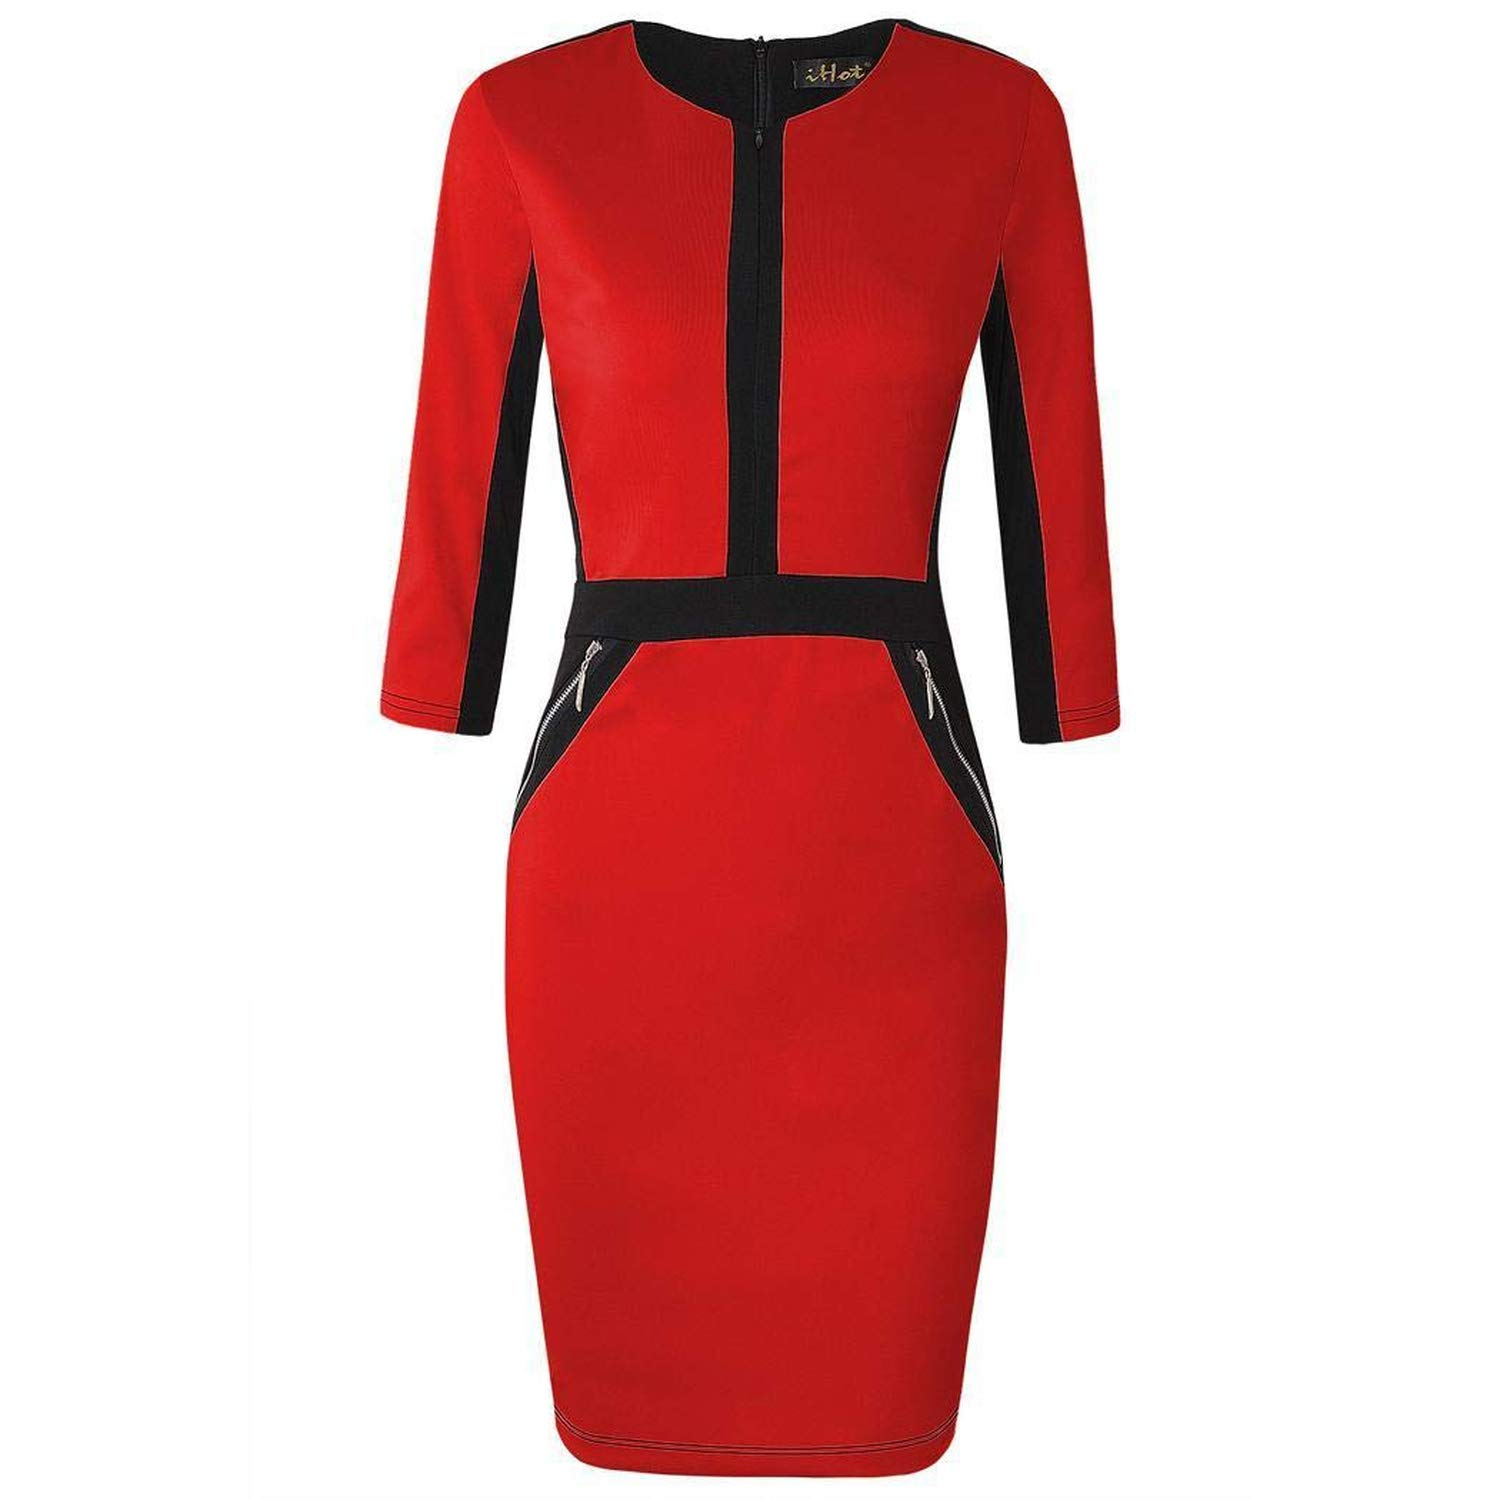 Red Yksth Women Fashion Round Neck Long Sleeve Contrast color Patchwork Dress Dresses